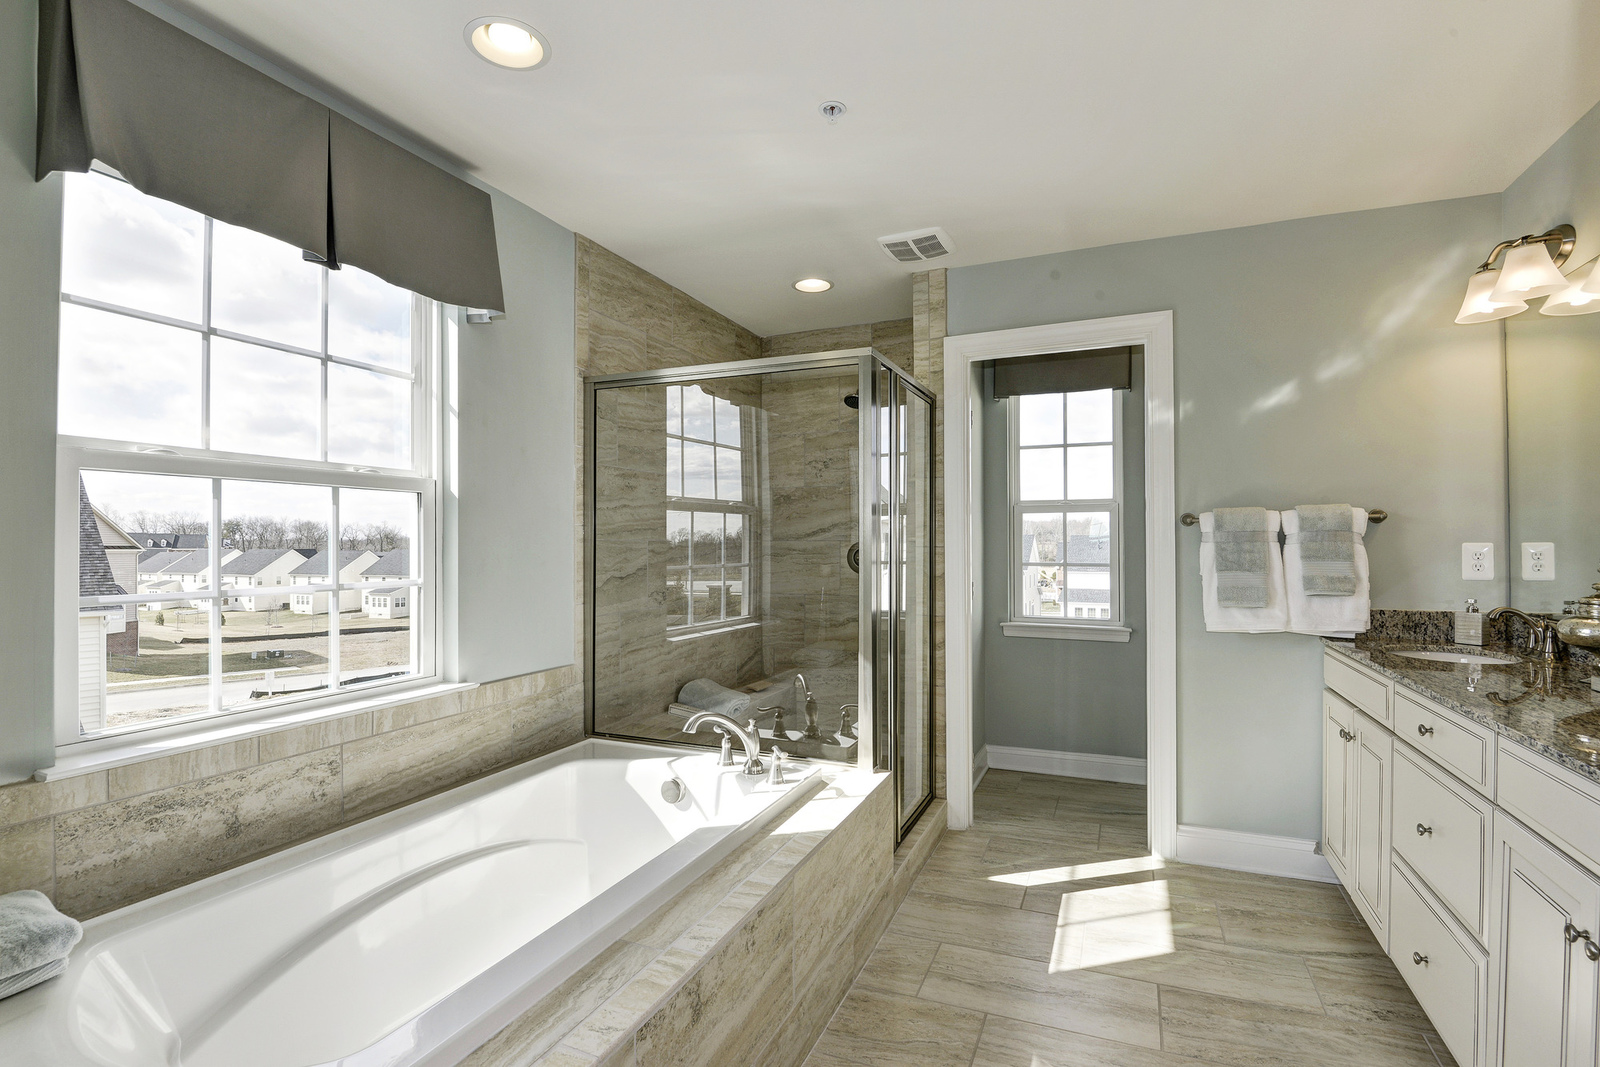 New Homes for sale at The Preserve At Salt Creek in ...